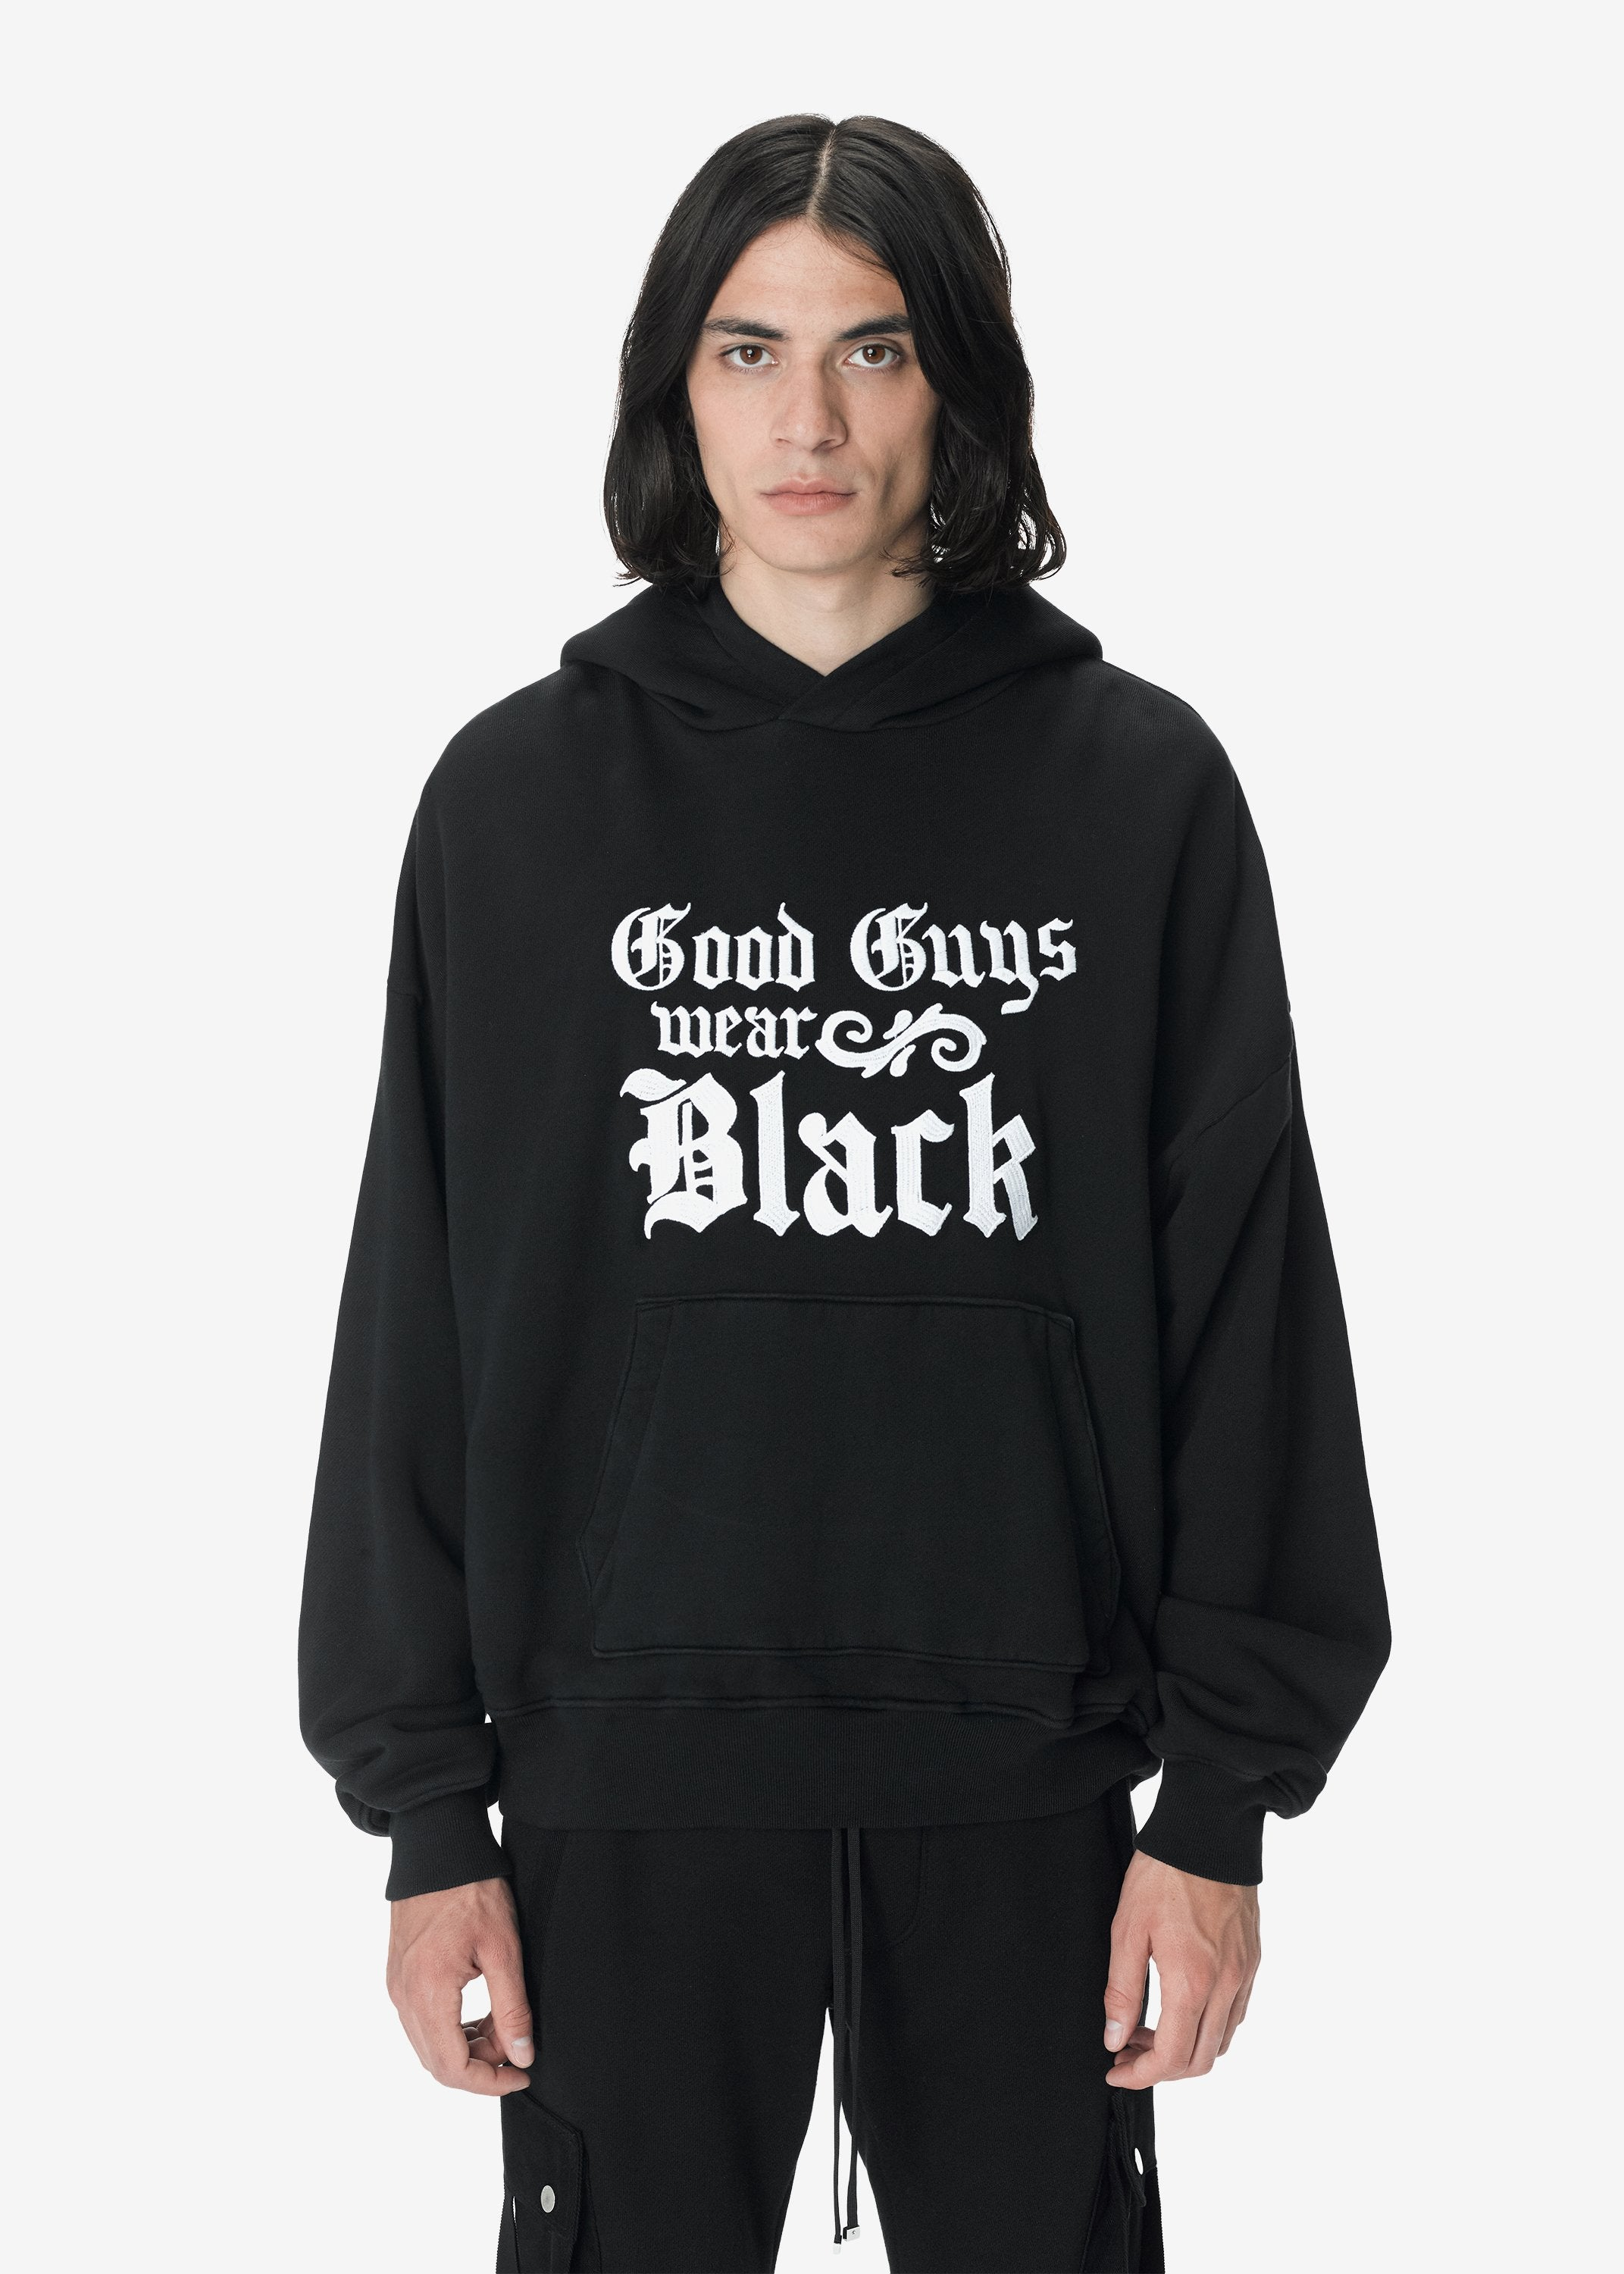 good-guys-hoodie-black-white-image-1